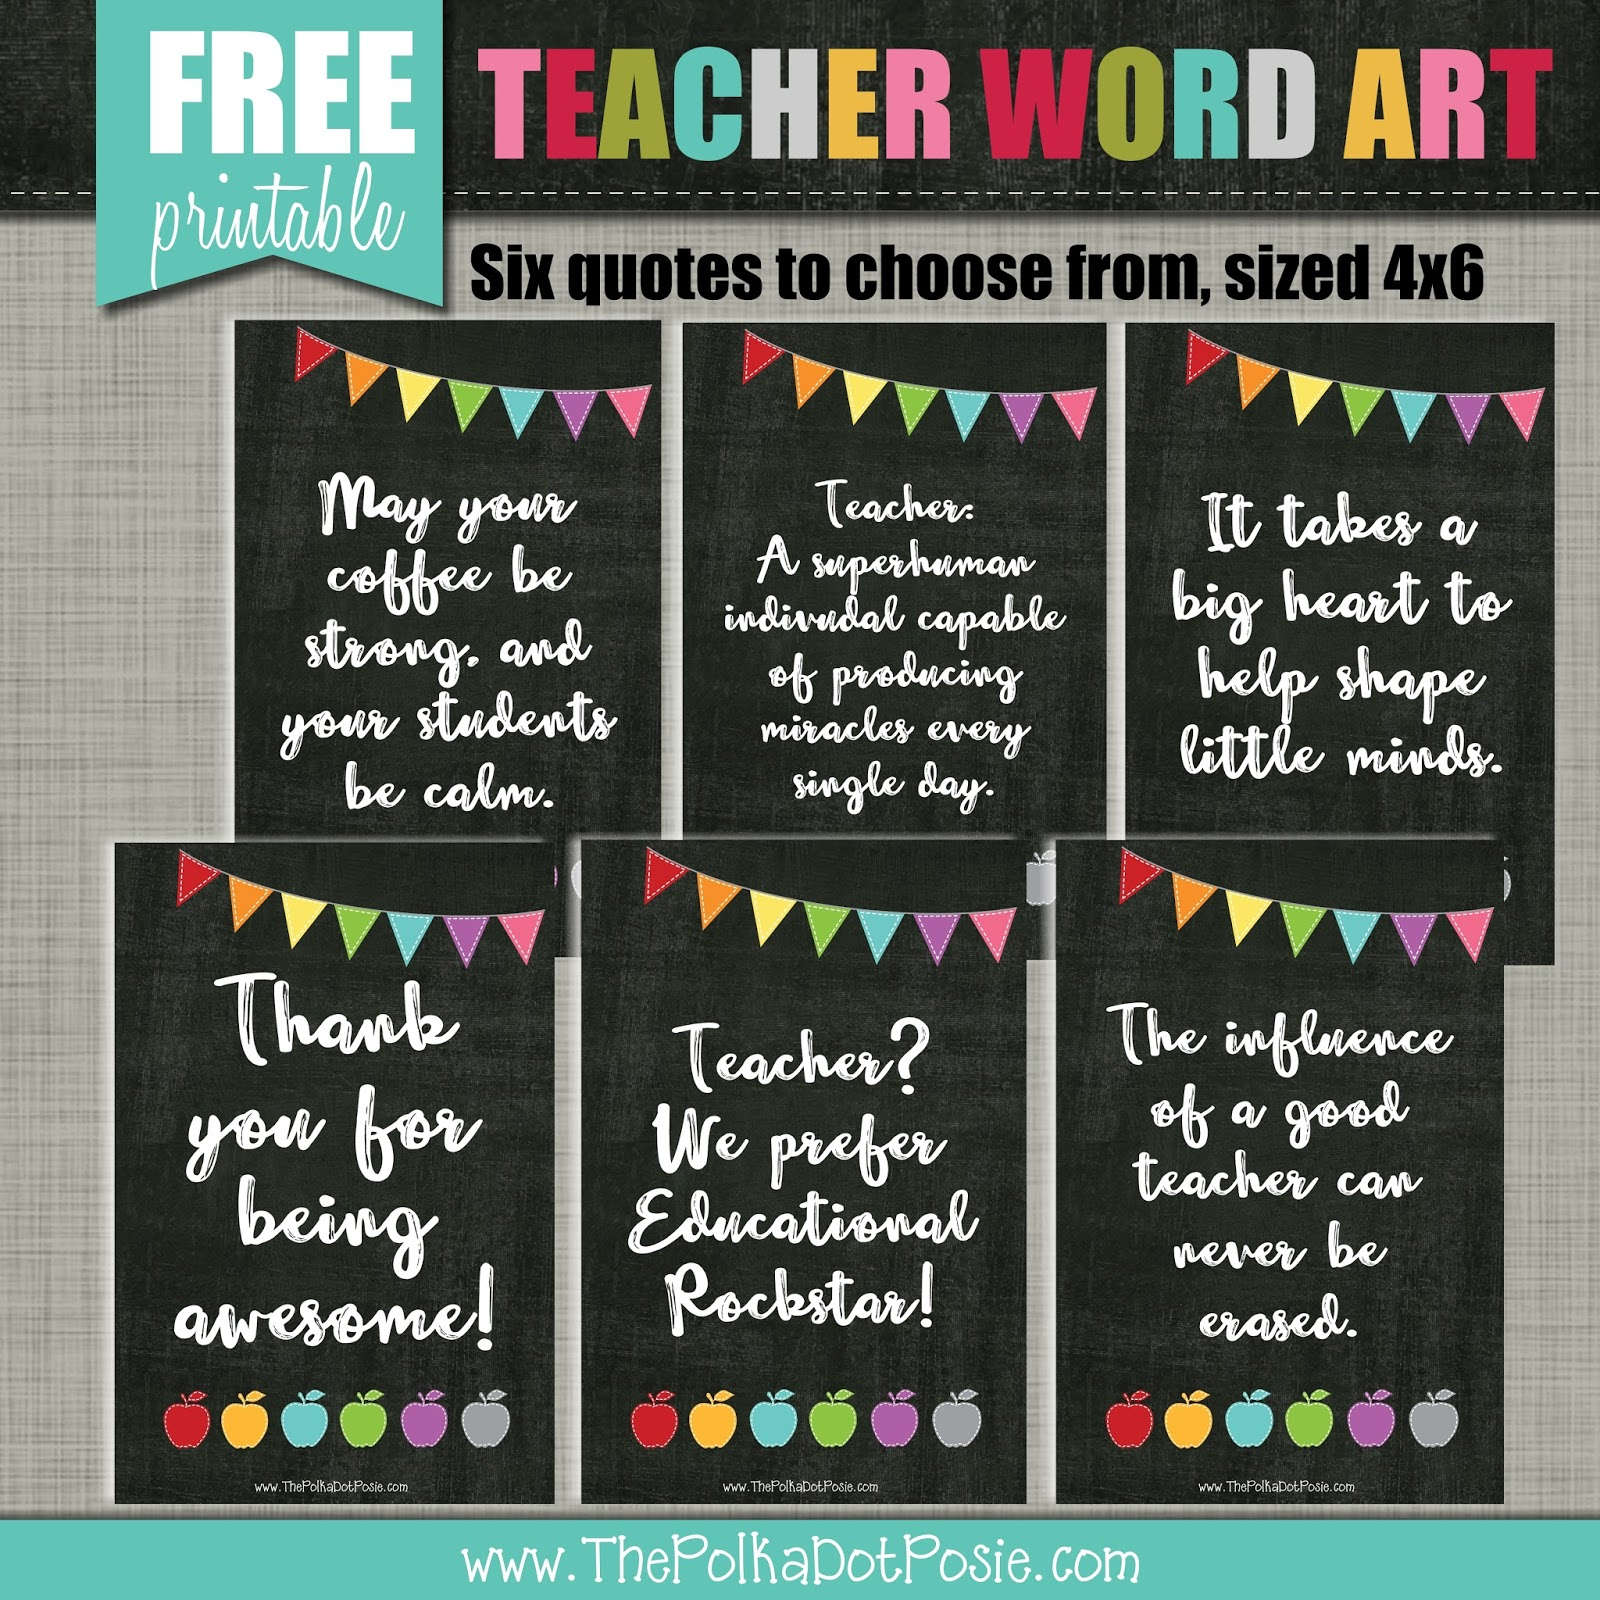 photograph relating to Free Printable Teacher Appreciation Quotes called The Polka Dot Posie: Order Geared up for Trainer Appreciation 7 days!